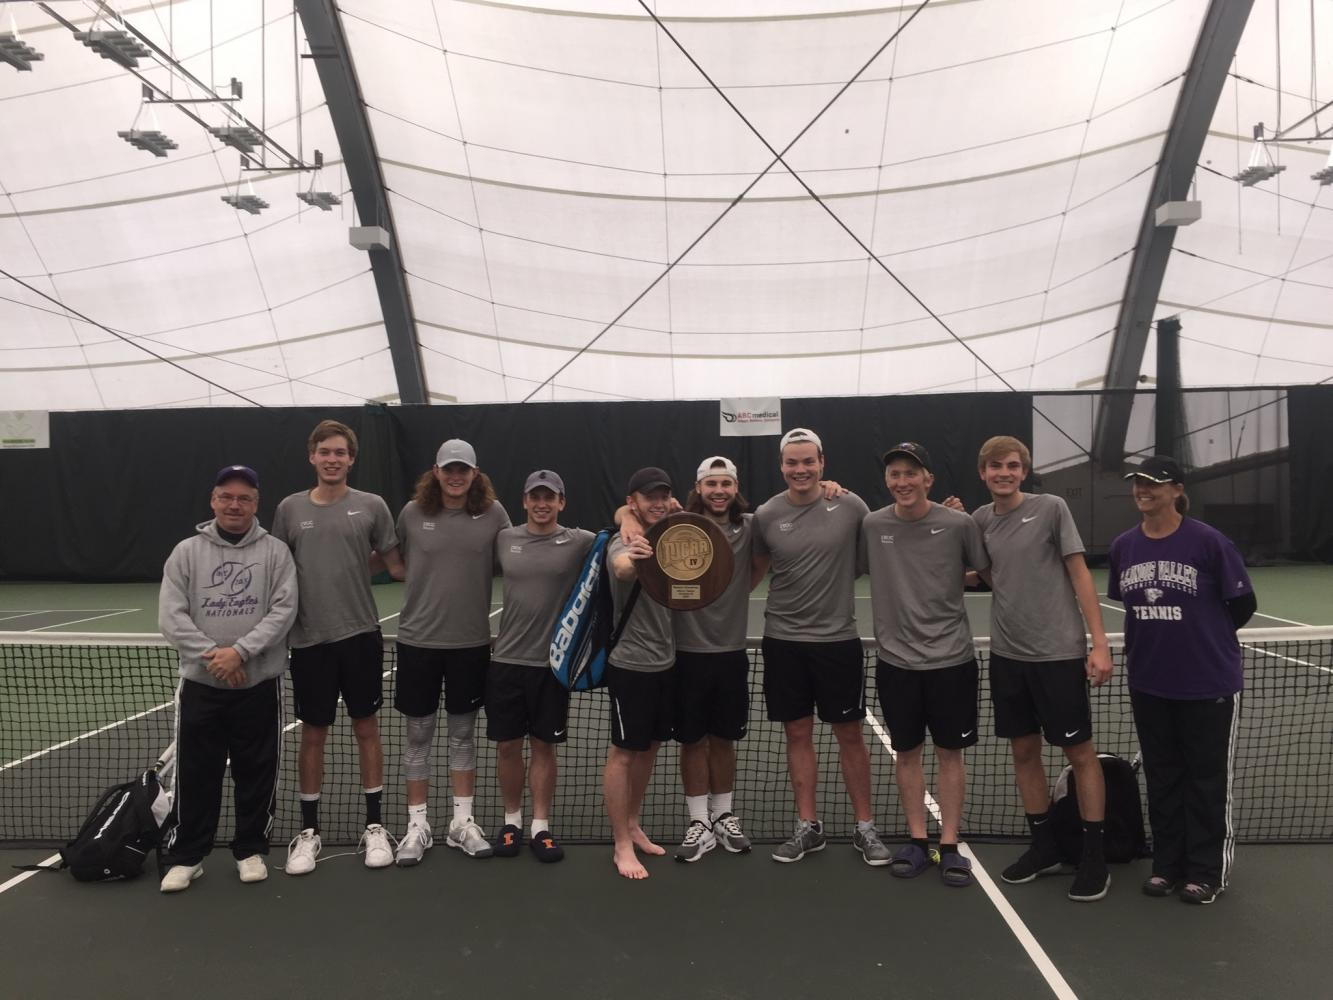 IVCC Tennis Team poses with their hardware after a Regional victory.